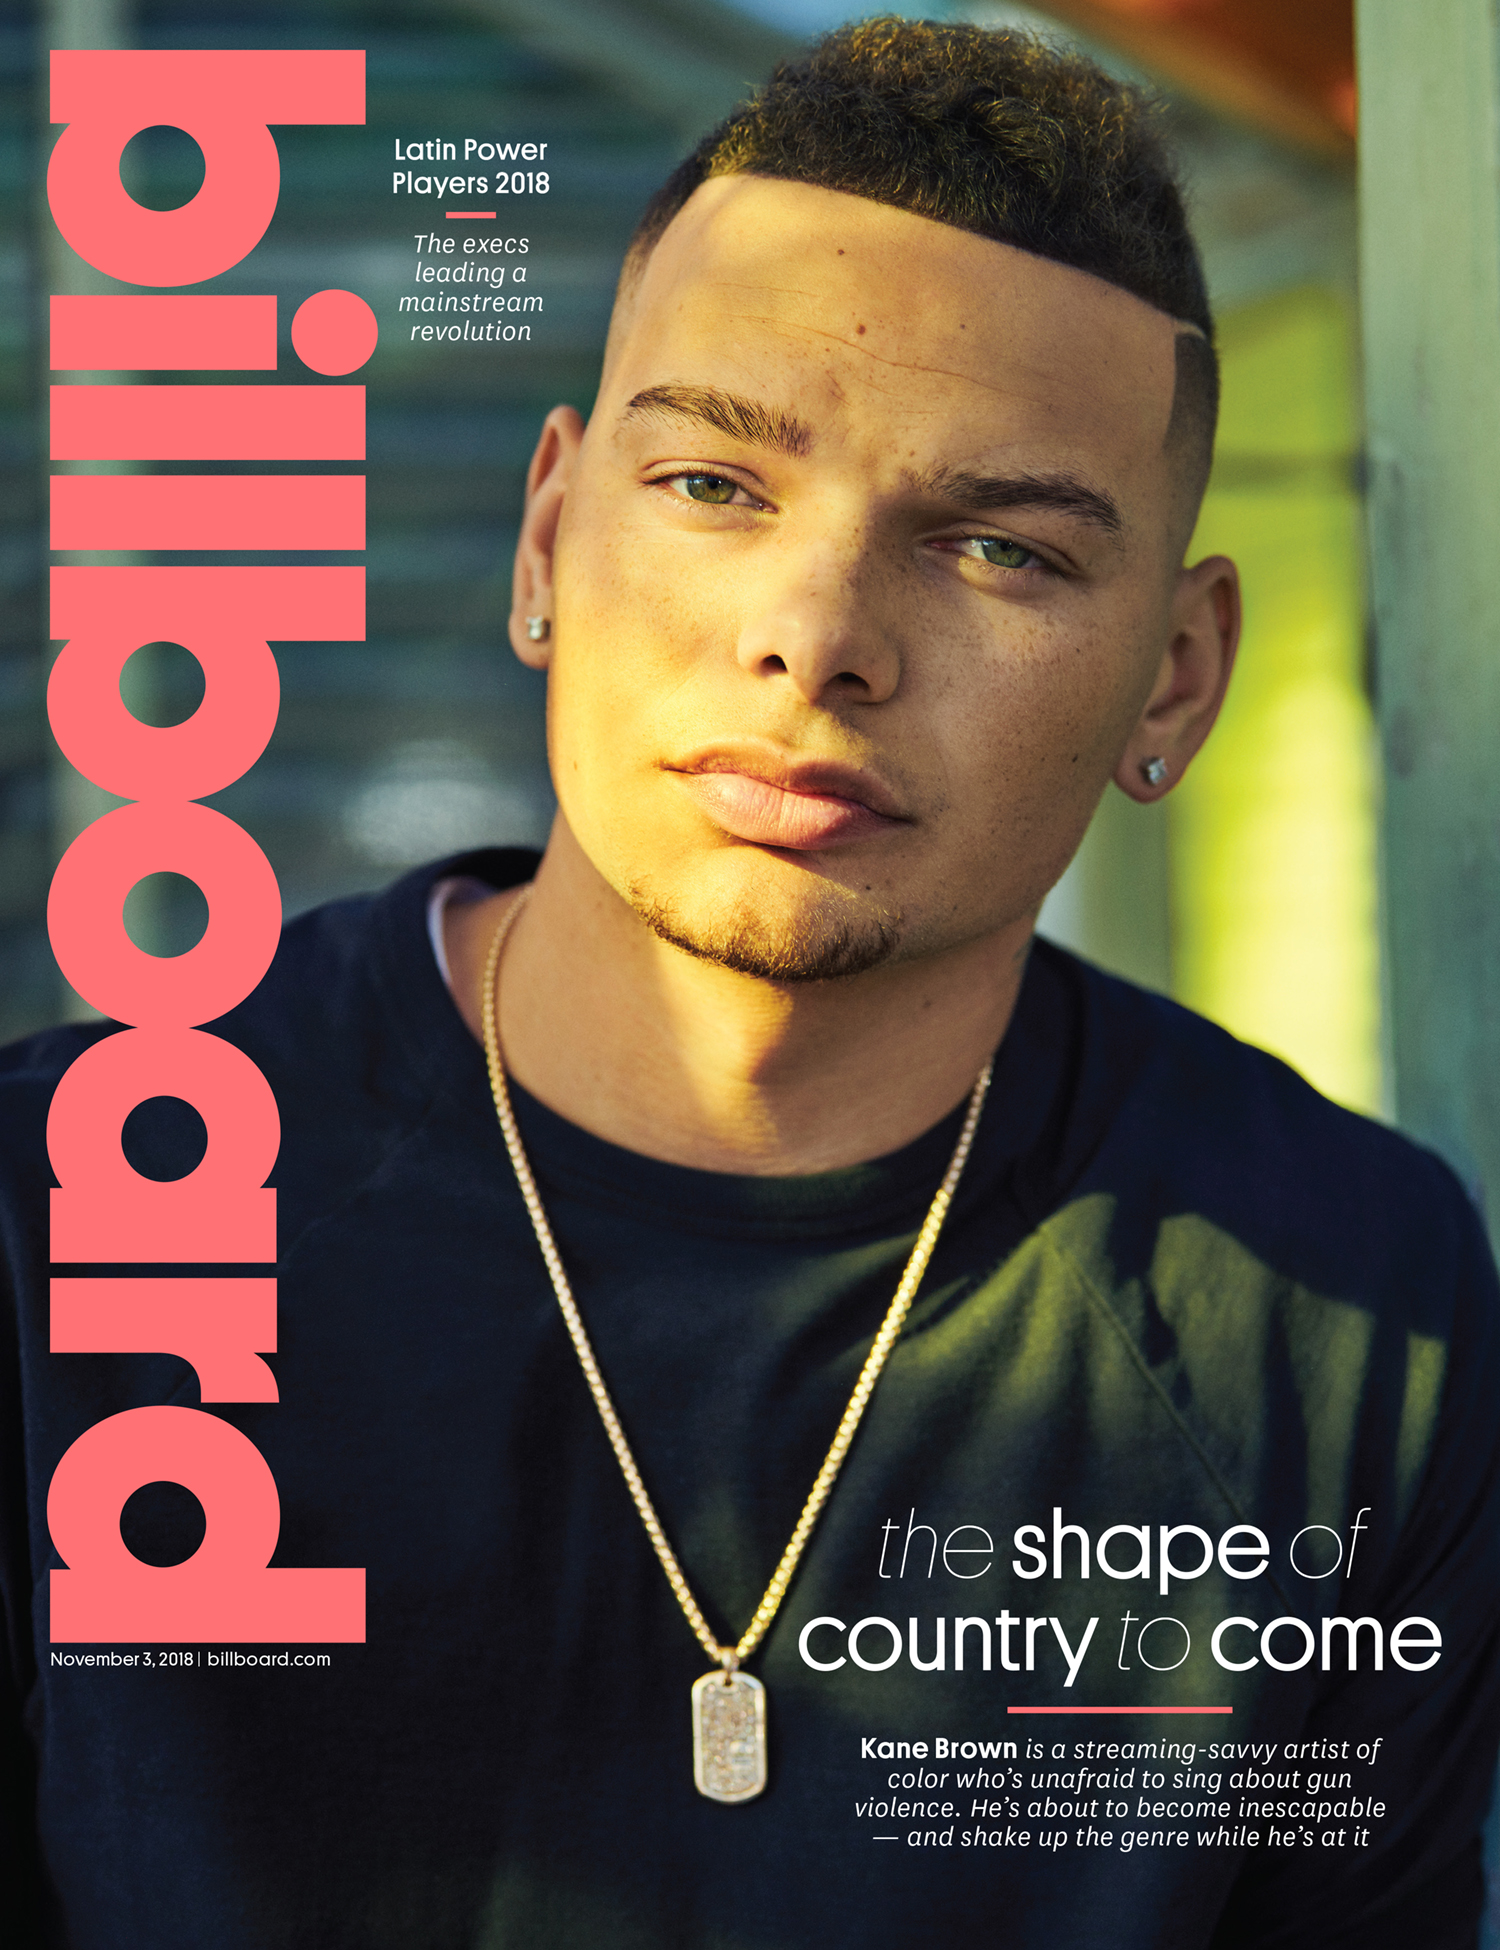 kane-brown-bb25-cov-2018-uxjcxn-billboard-u-1500.jpg